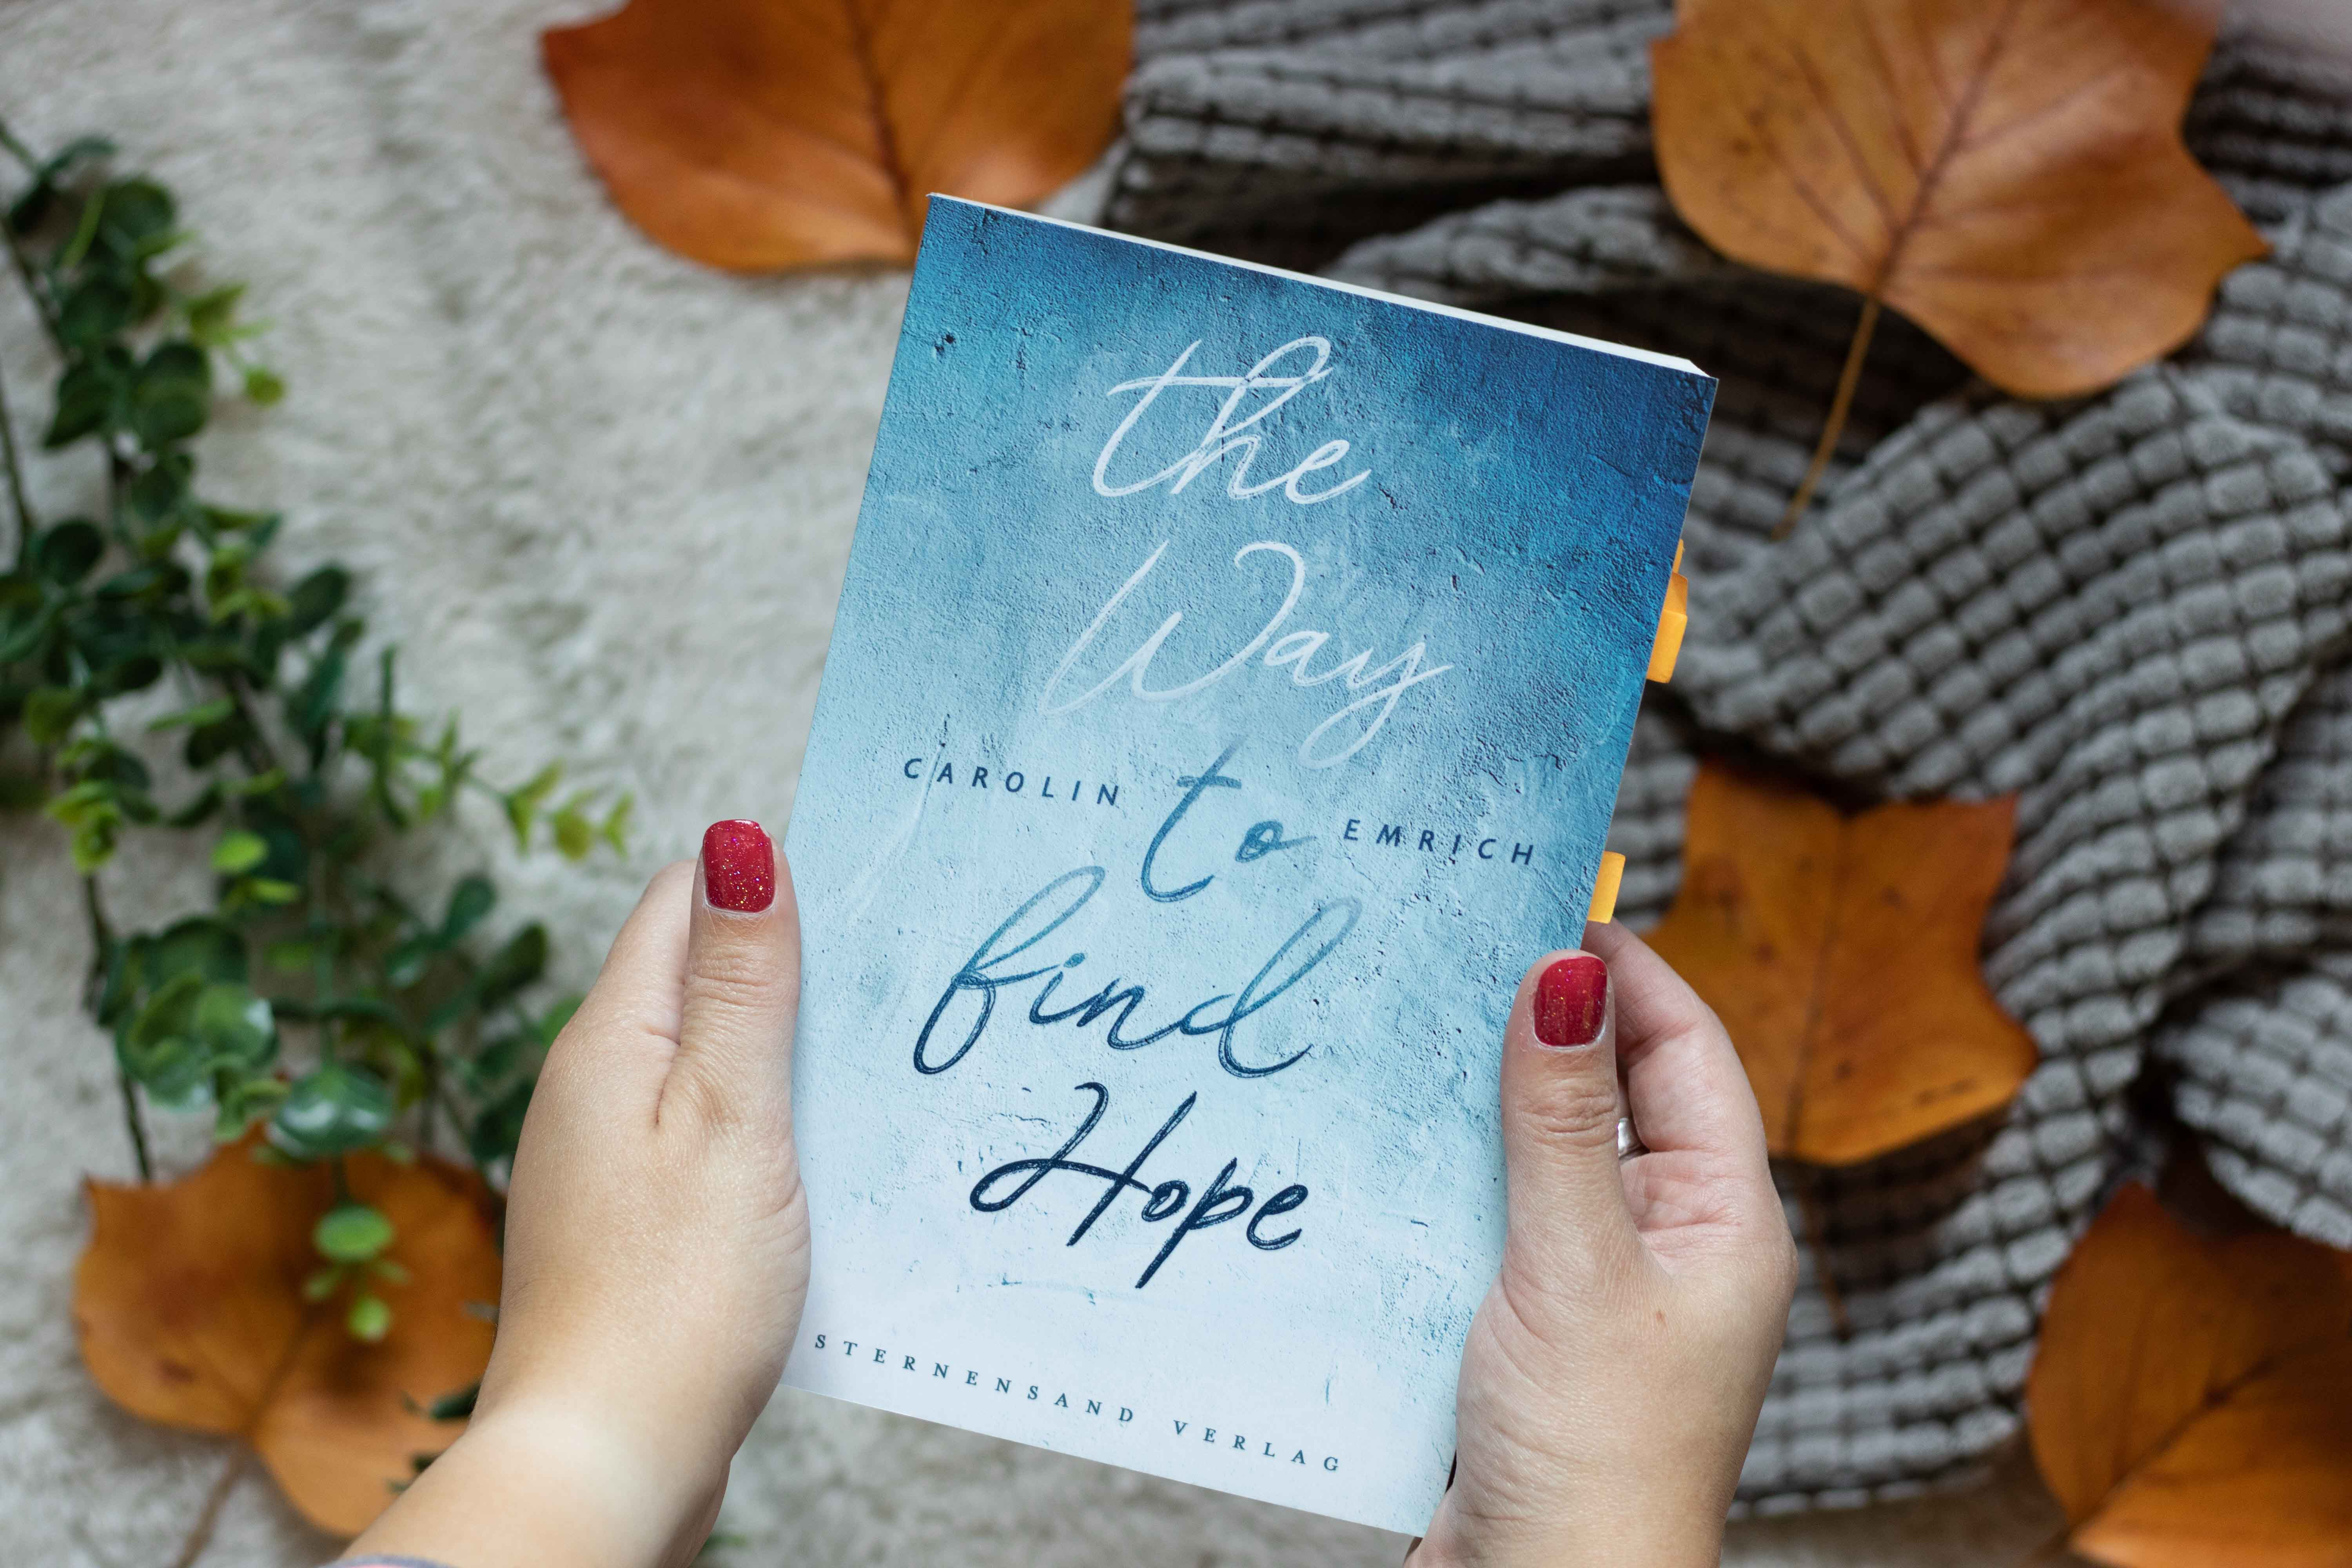 The way to find hope | Carolin Emmrich